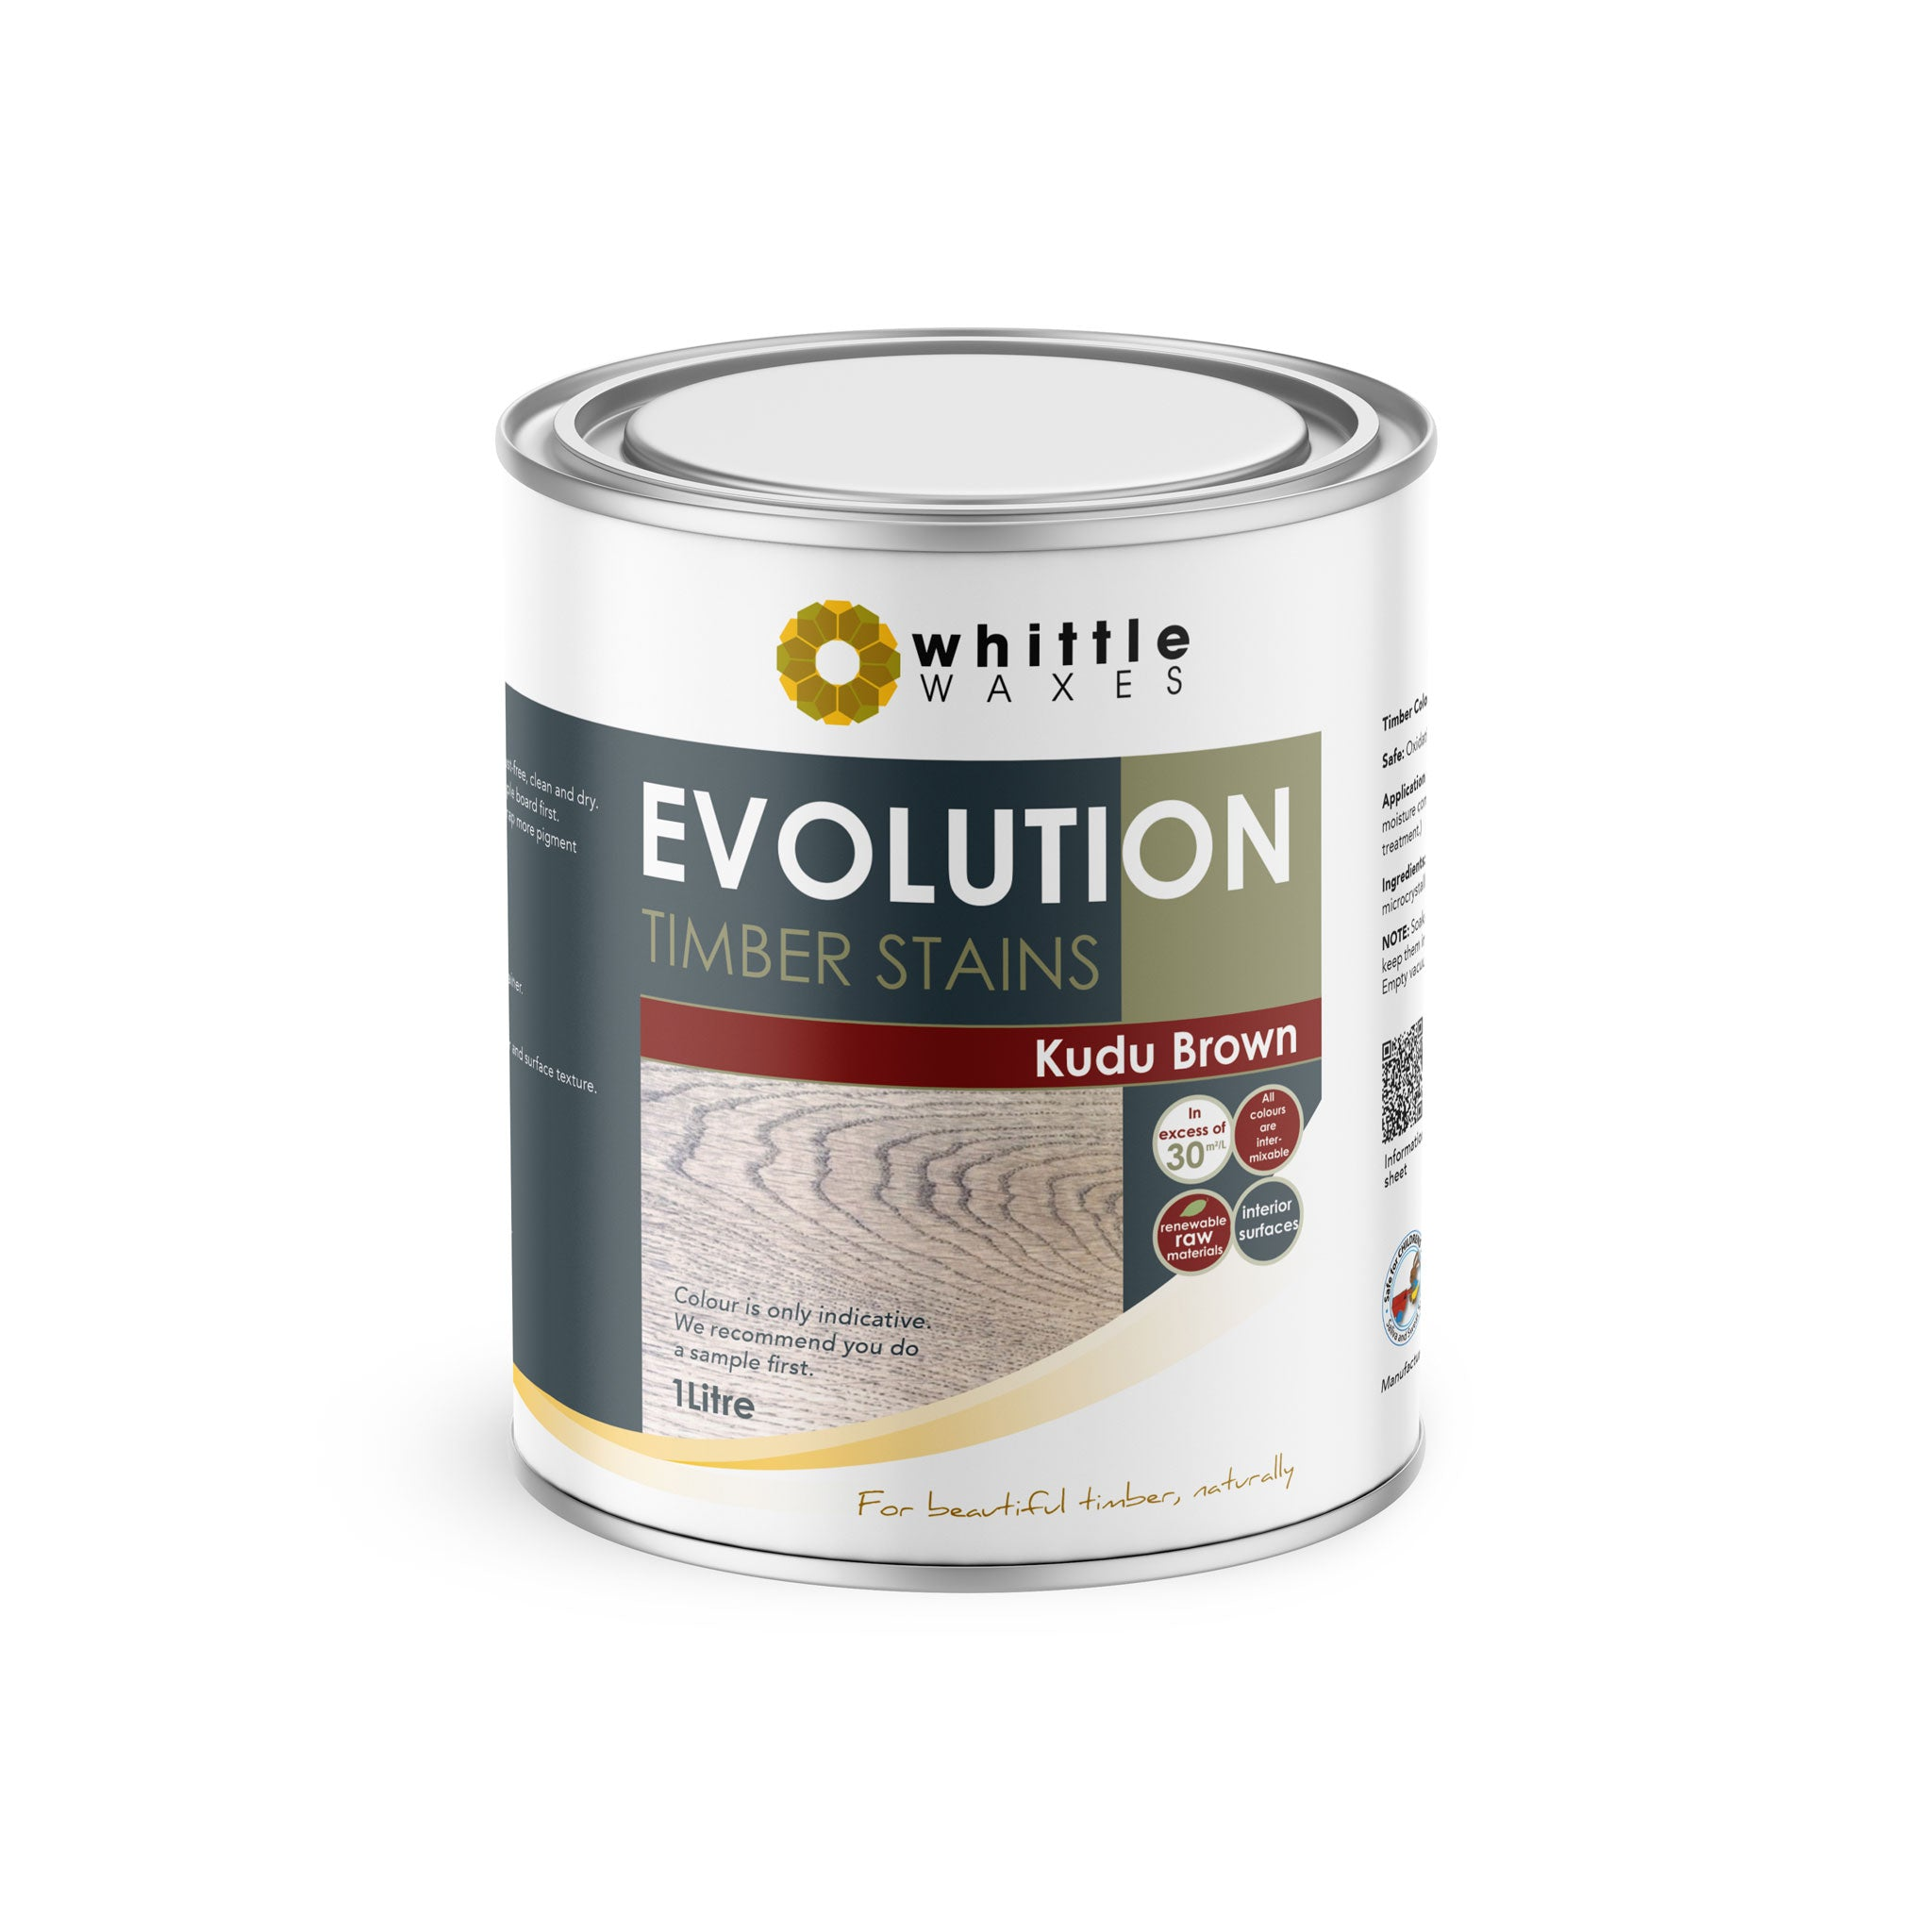 Whittle Waxes Evolution Colours (Kudu Brown) - quality timber stain - 1 Litre